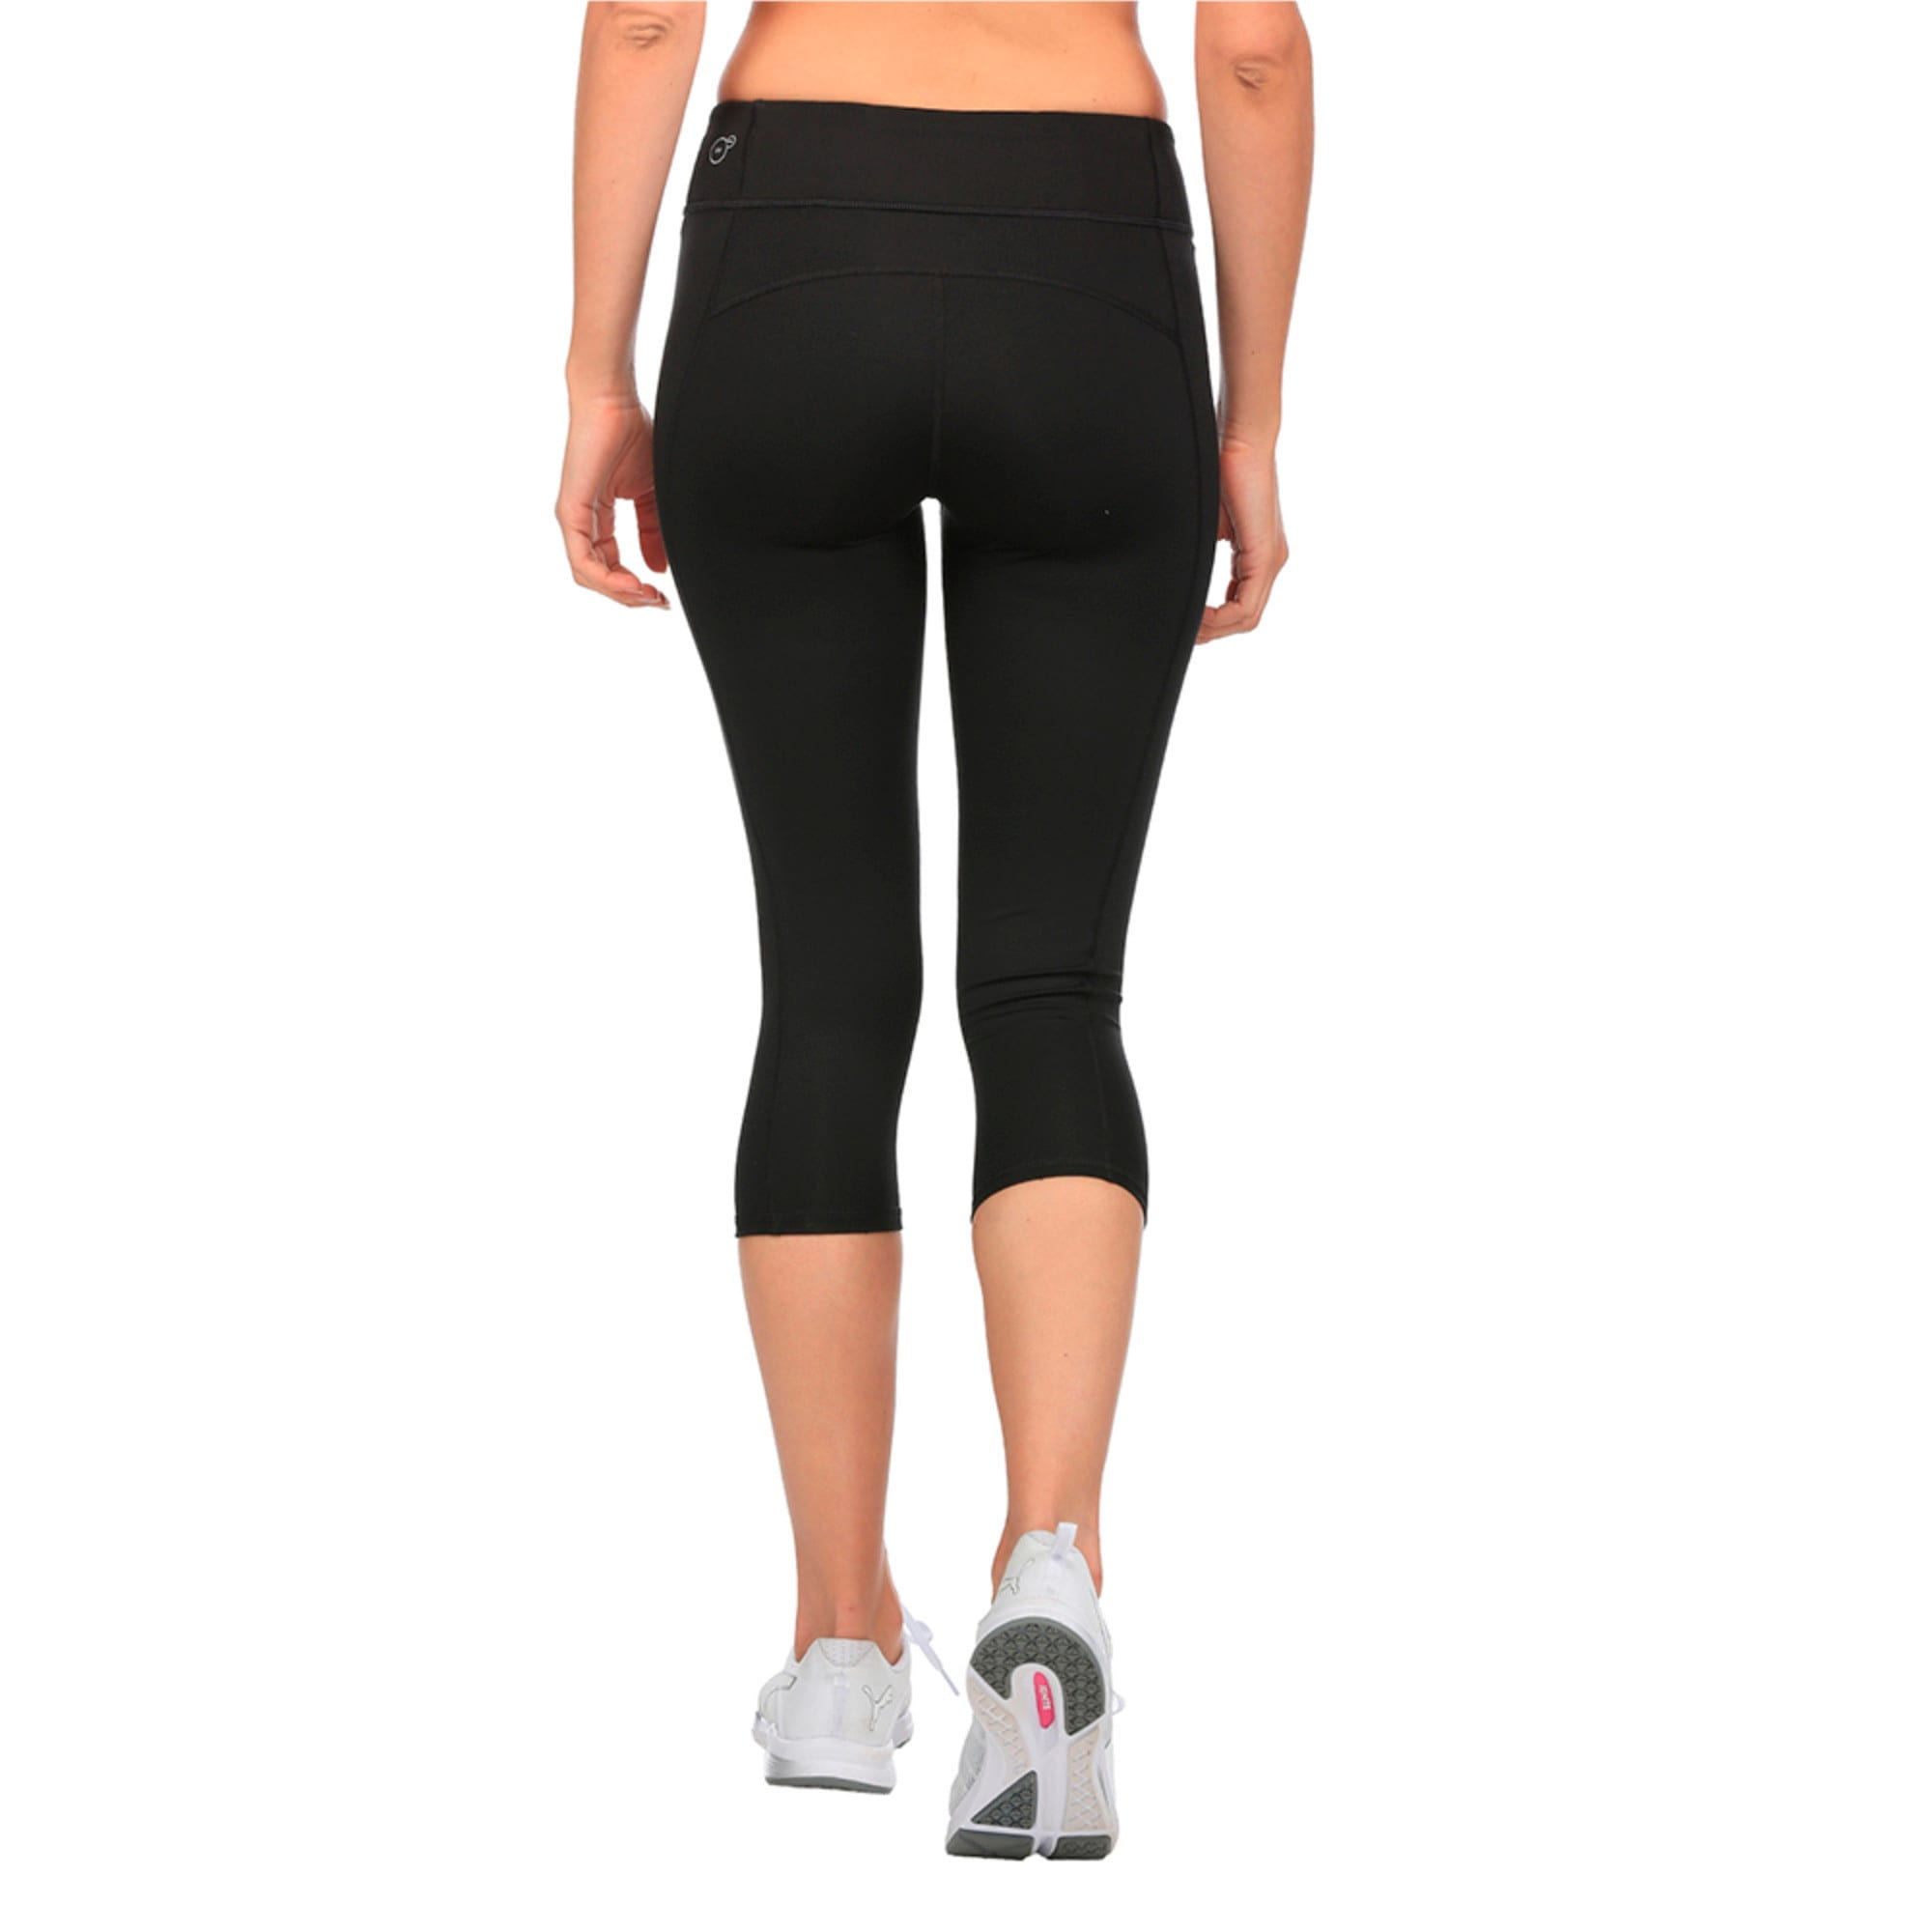 Thumbnail 5 of Essential 3 4 Tight, Puma Black, medium-IND